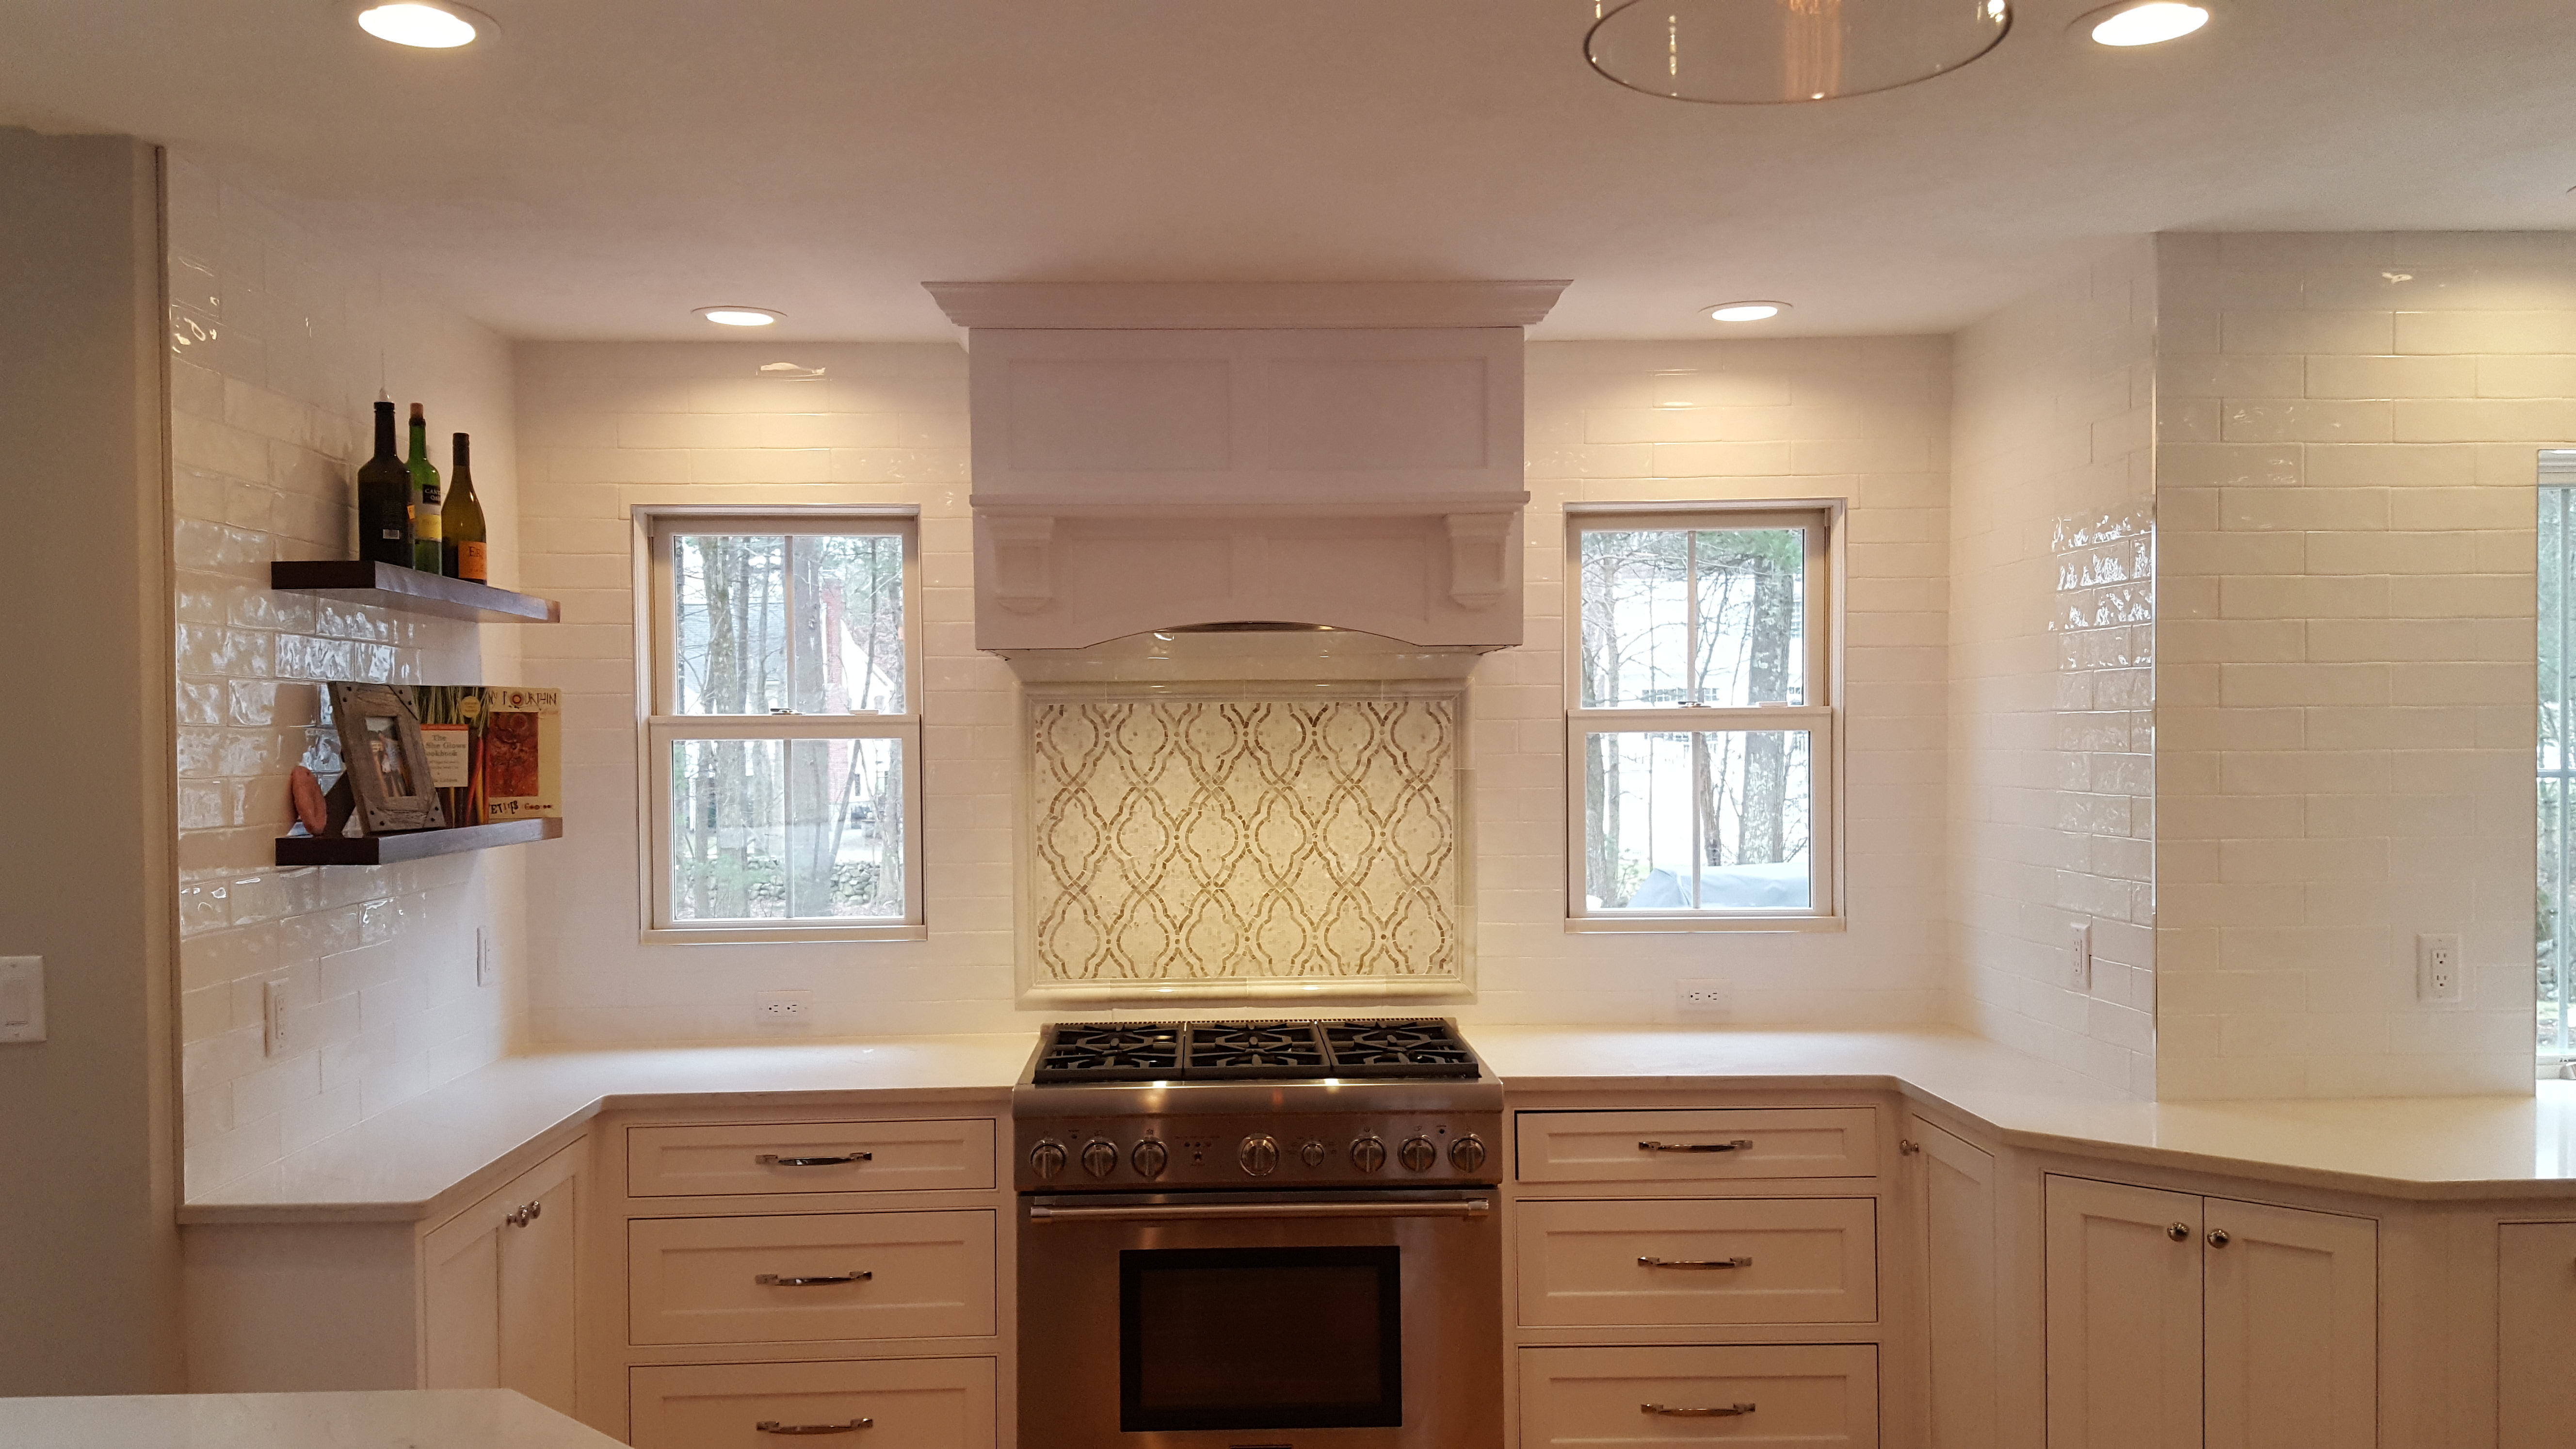 Marble Backsplash Patterned